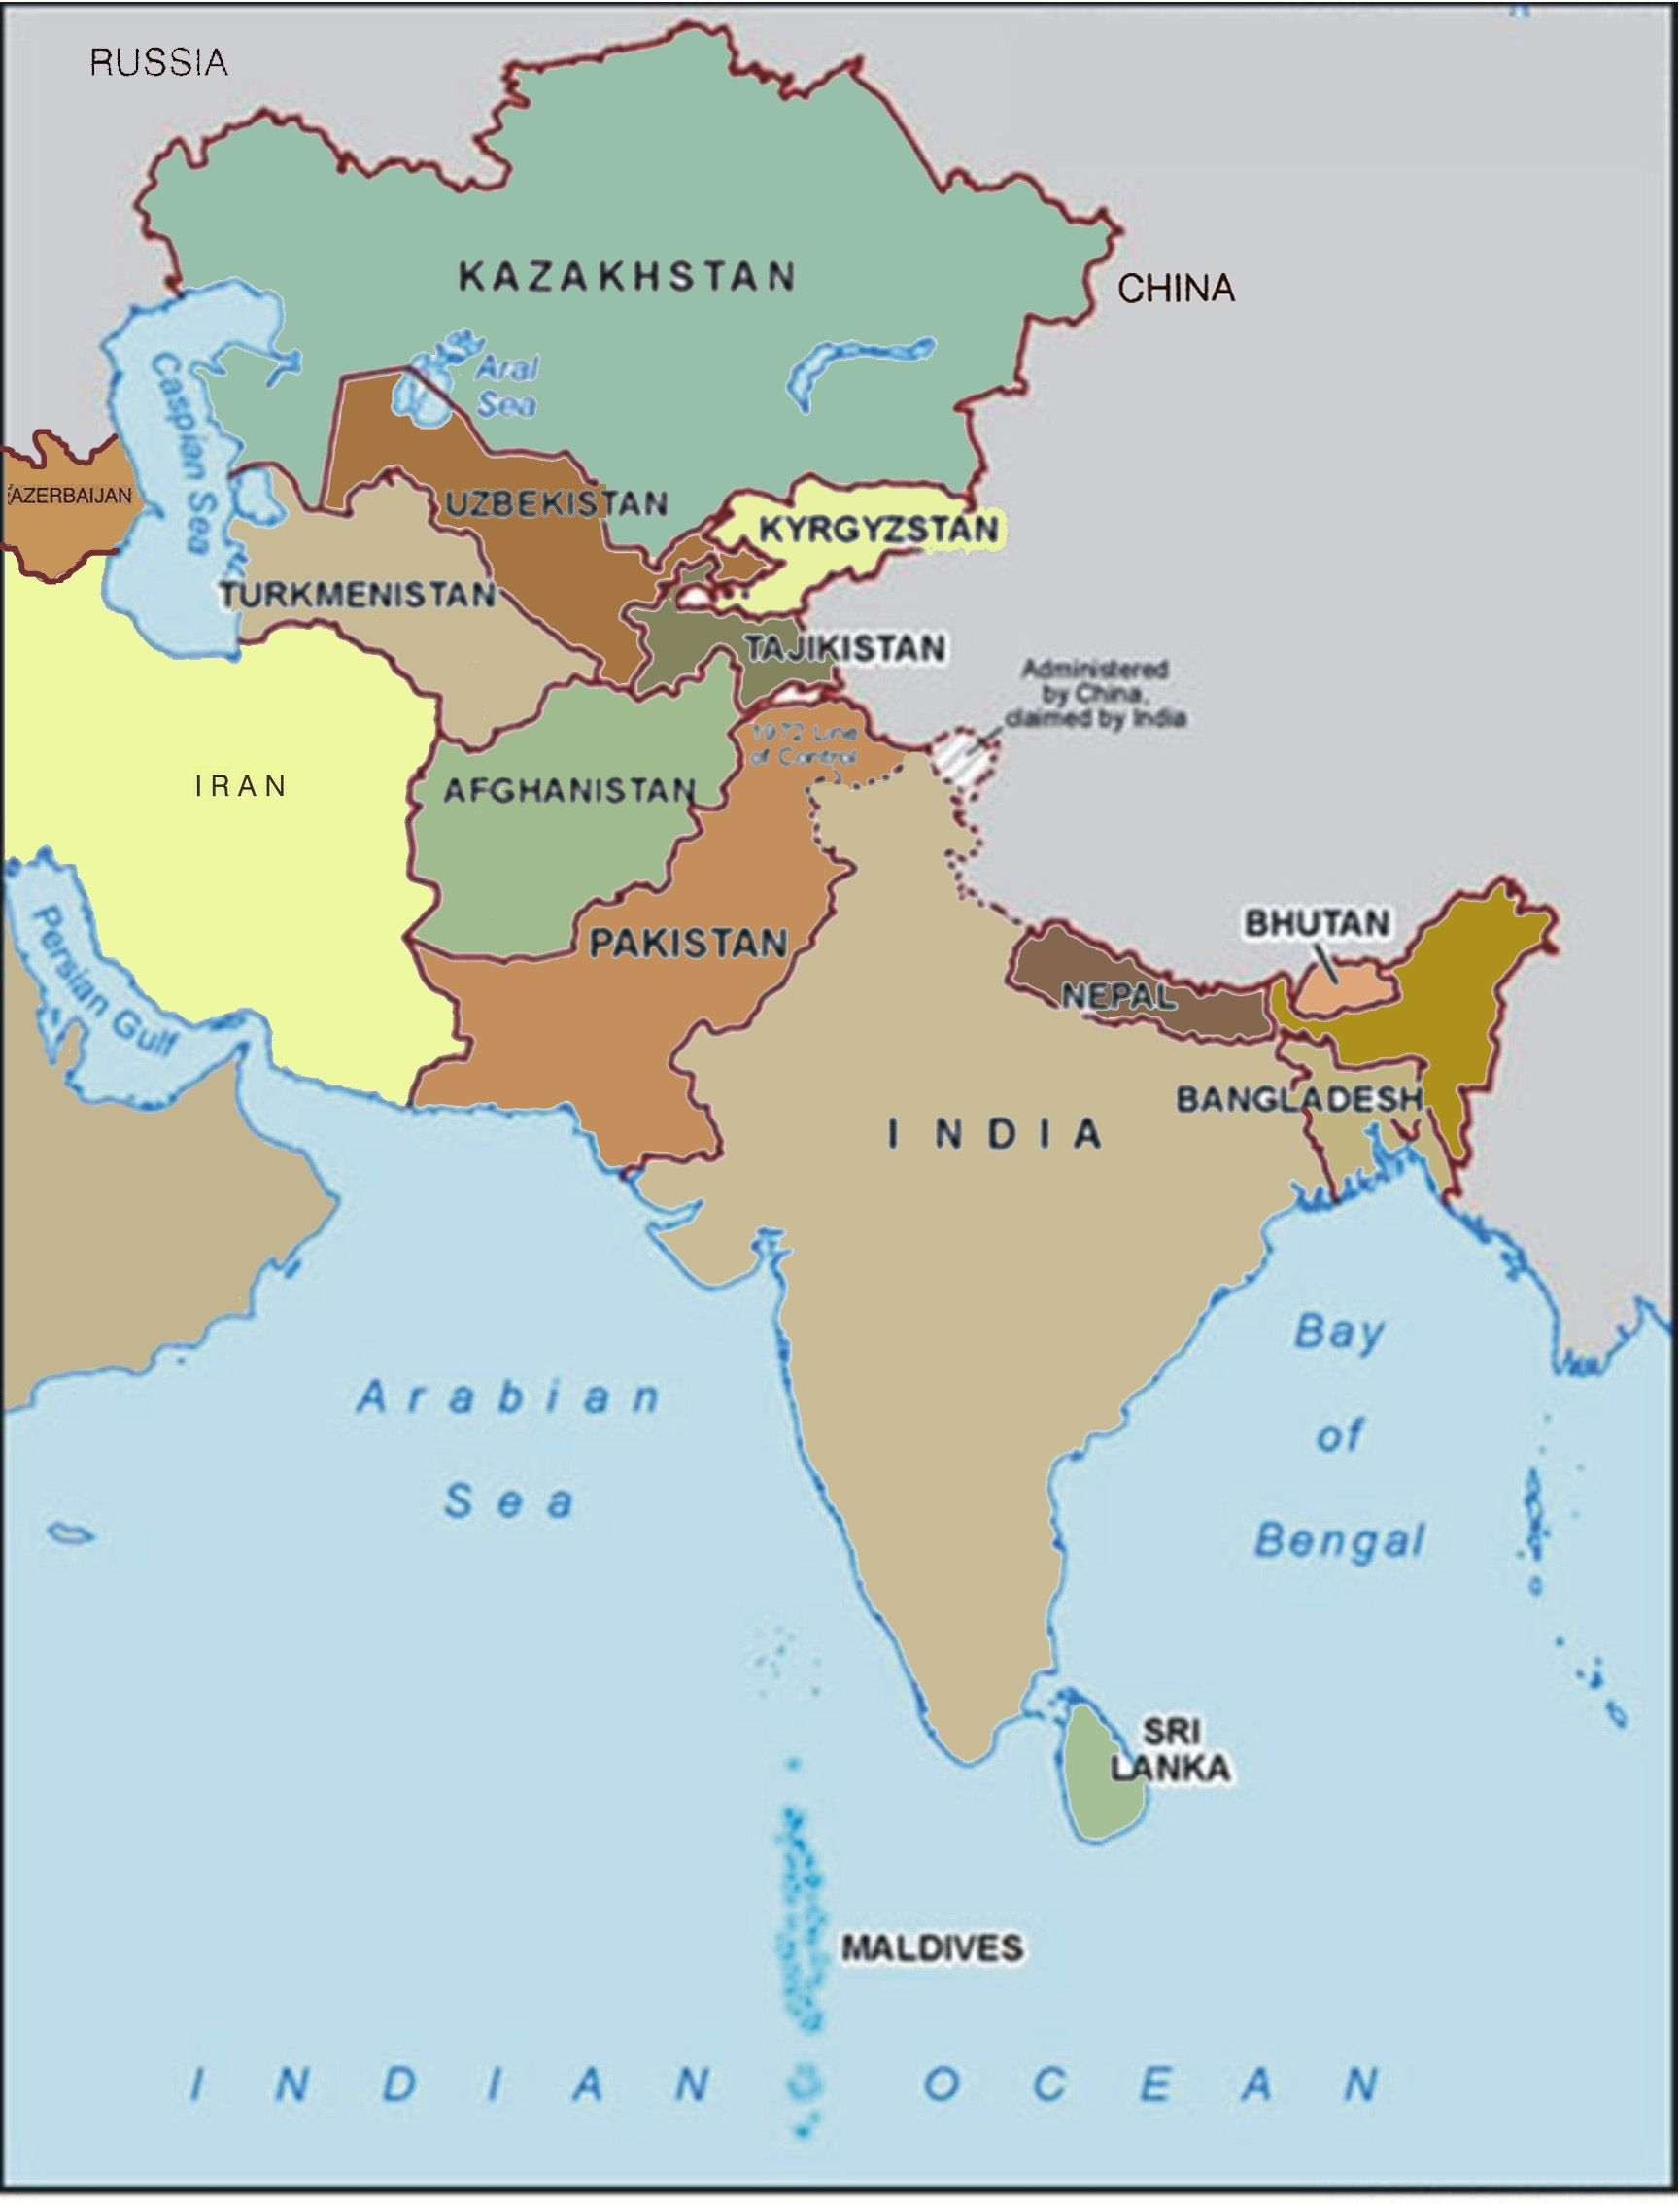 Map Of S Asia.Political Map Of South Asia